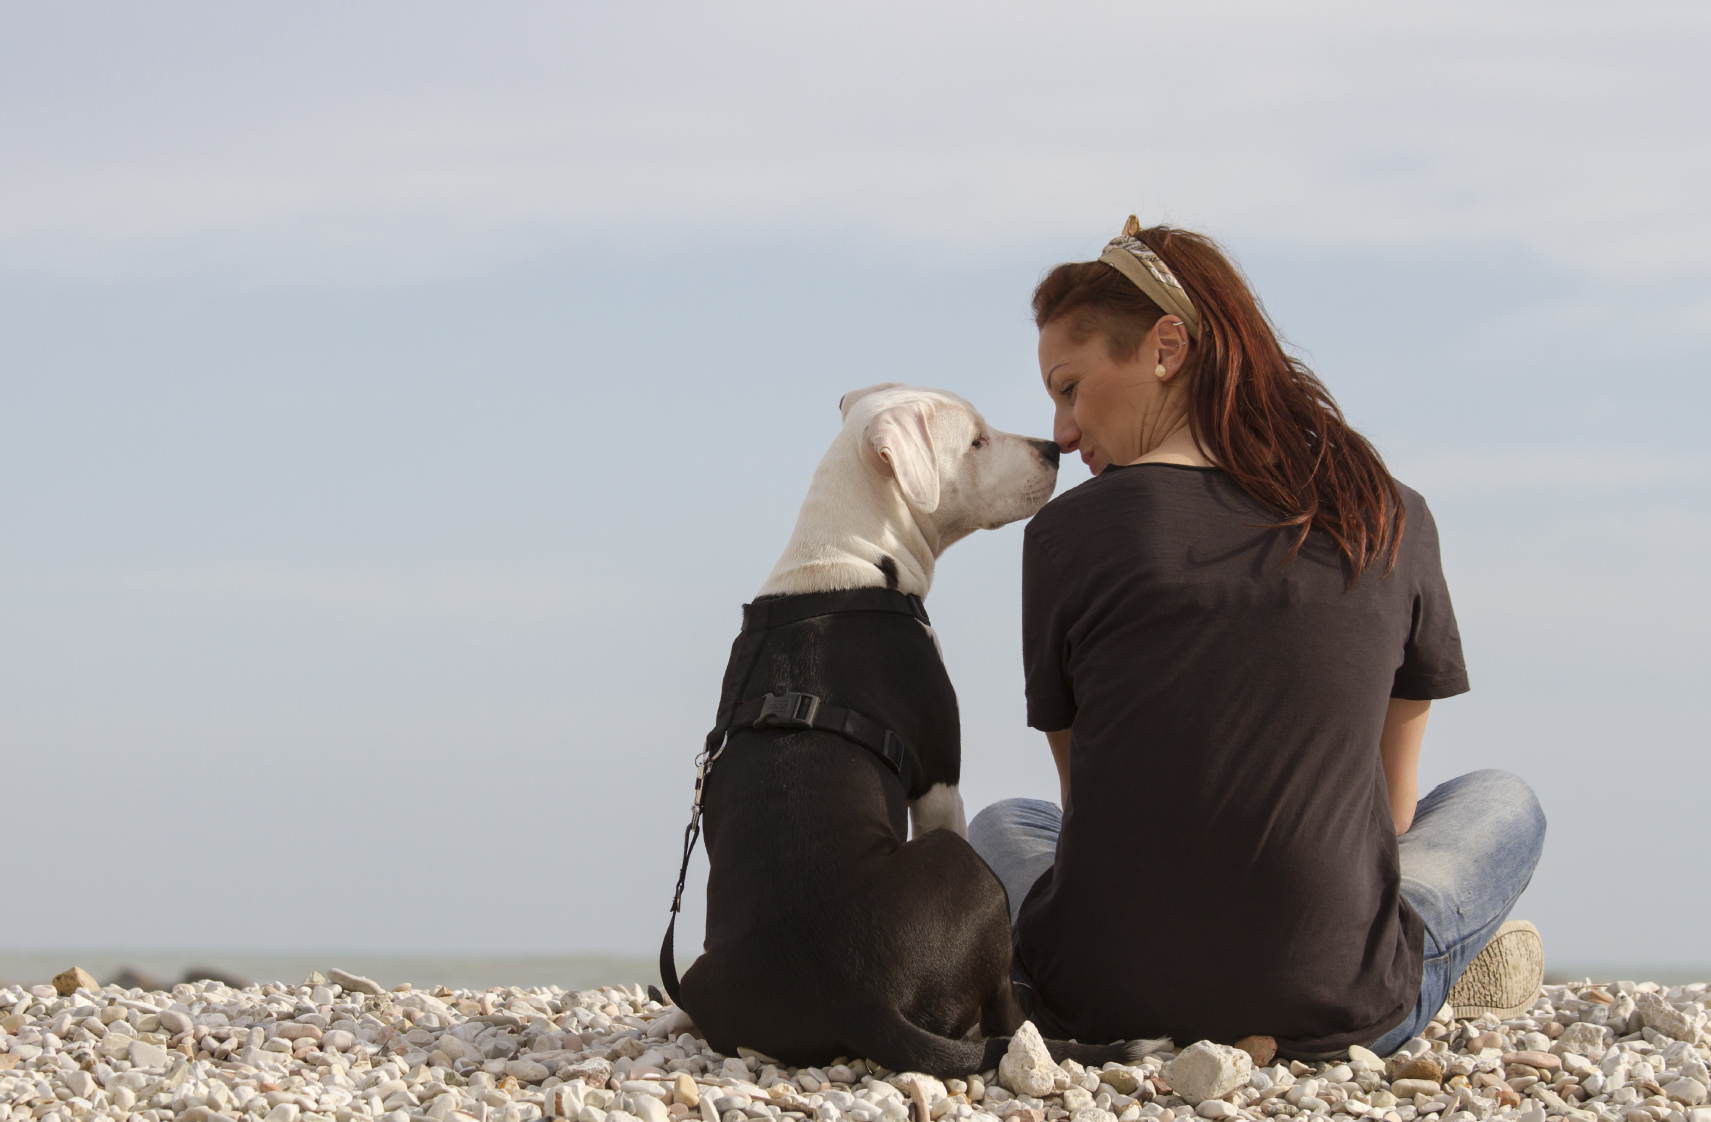 Man's Best Friend Can Save Your Life From Cancer! Dogs Detect Cancer With 90 Percent Accuracy